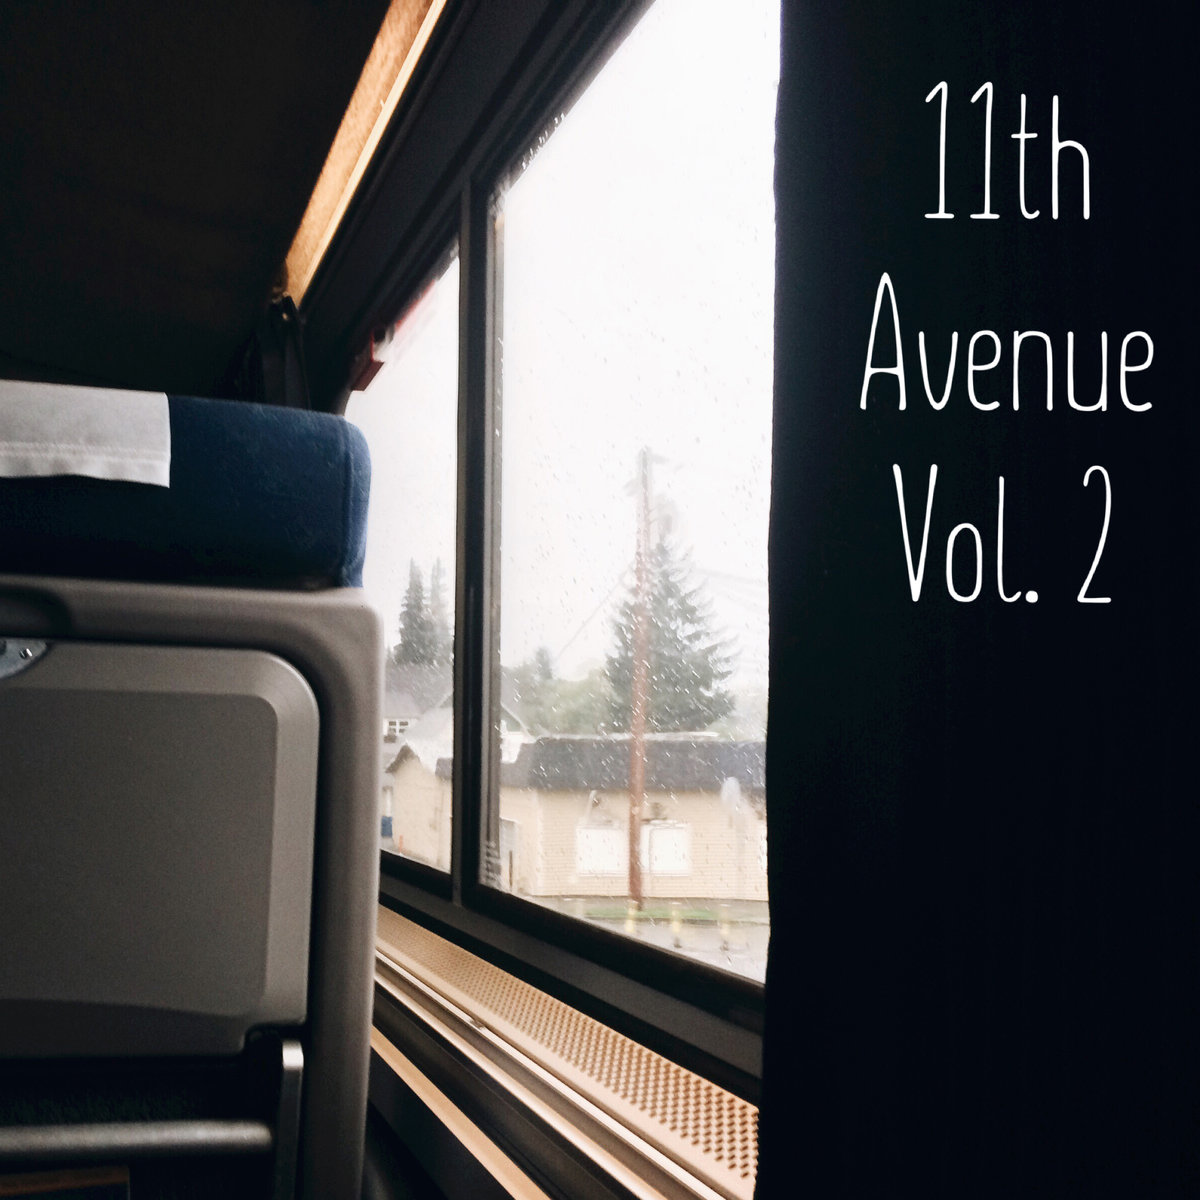 King Willow - California @ '11th Avenue Vol. 2' album (11th ave records, 11thaverecords 11th avenue)